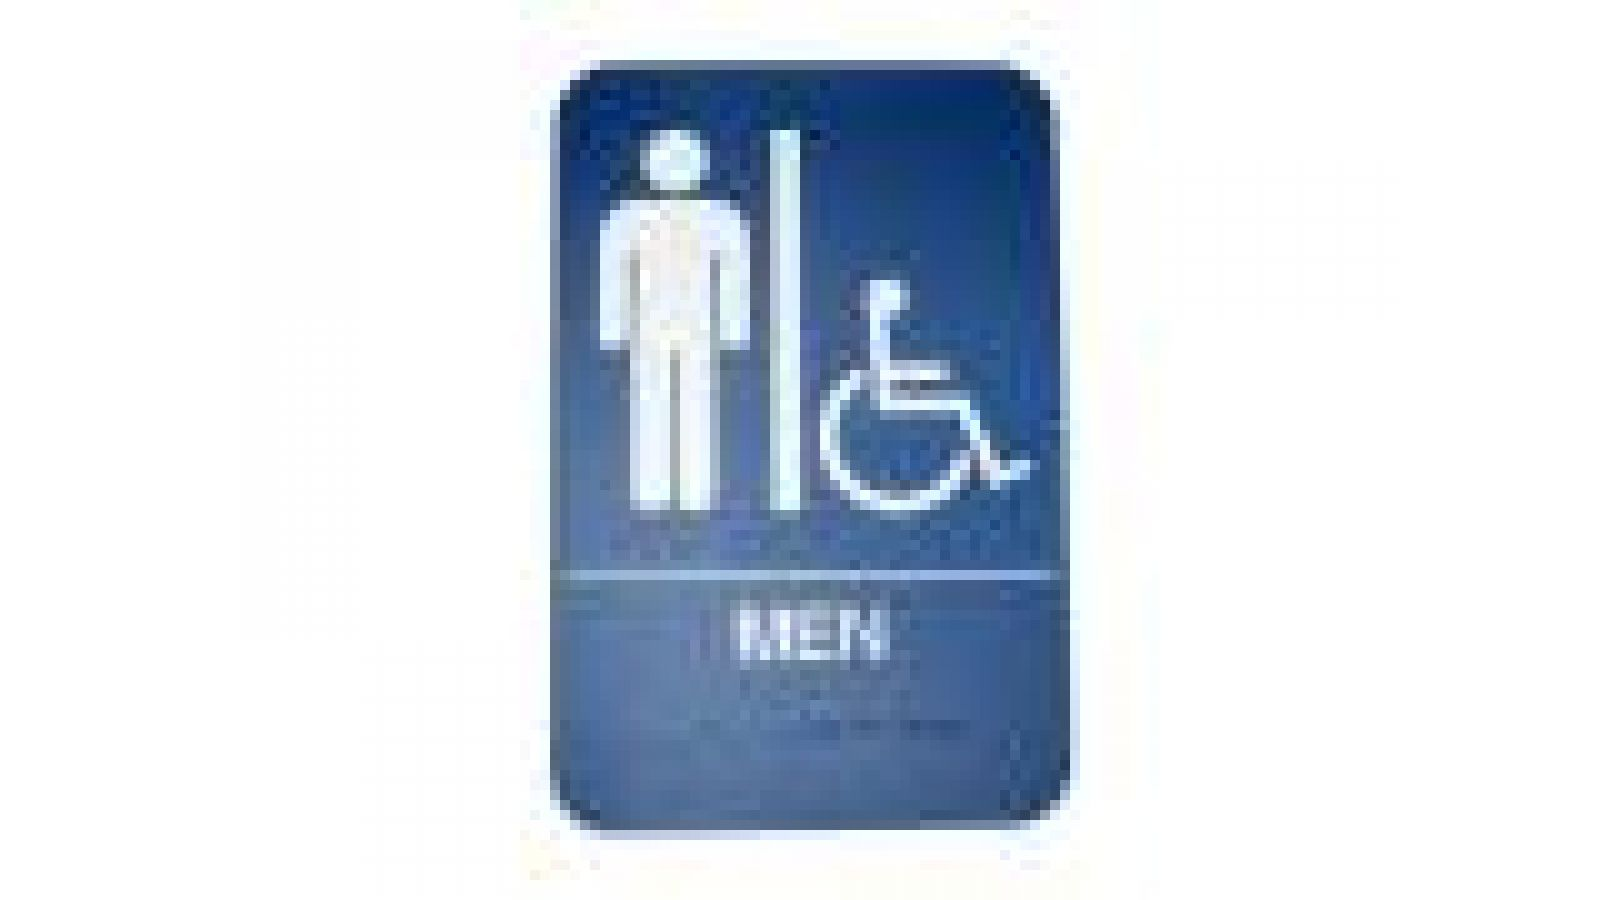 Don-Jo Men's Restroom and Symbol of Accessibility Sign